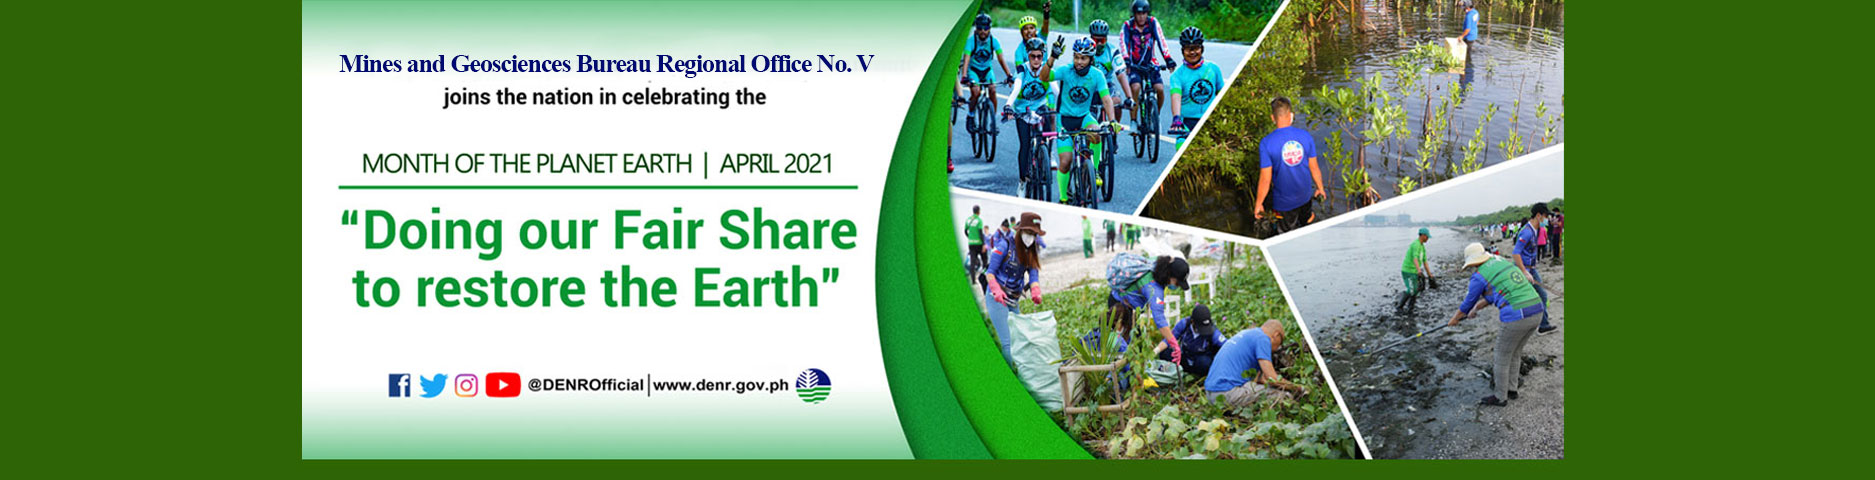 April 2021 Month of the Planet Earth